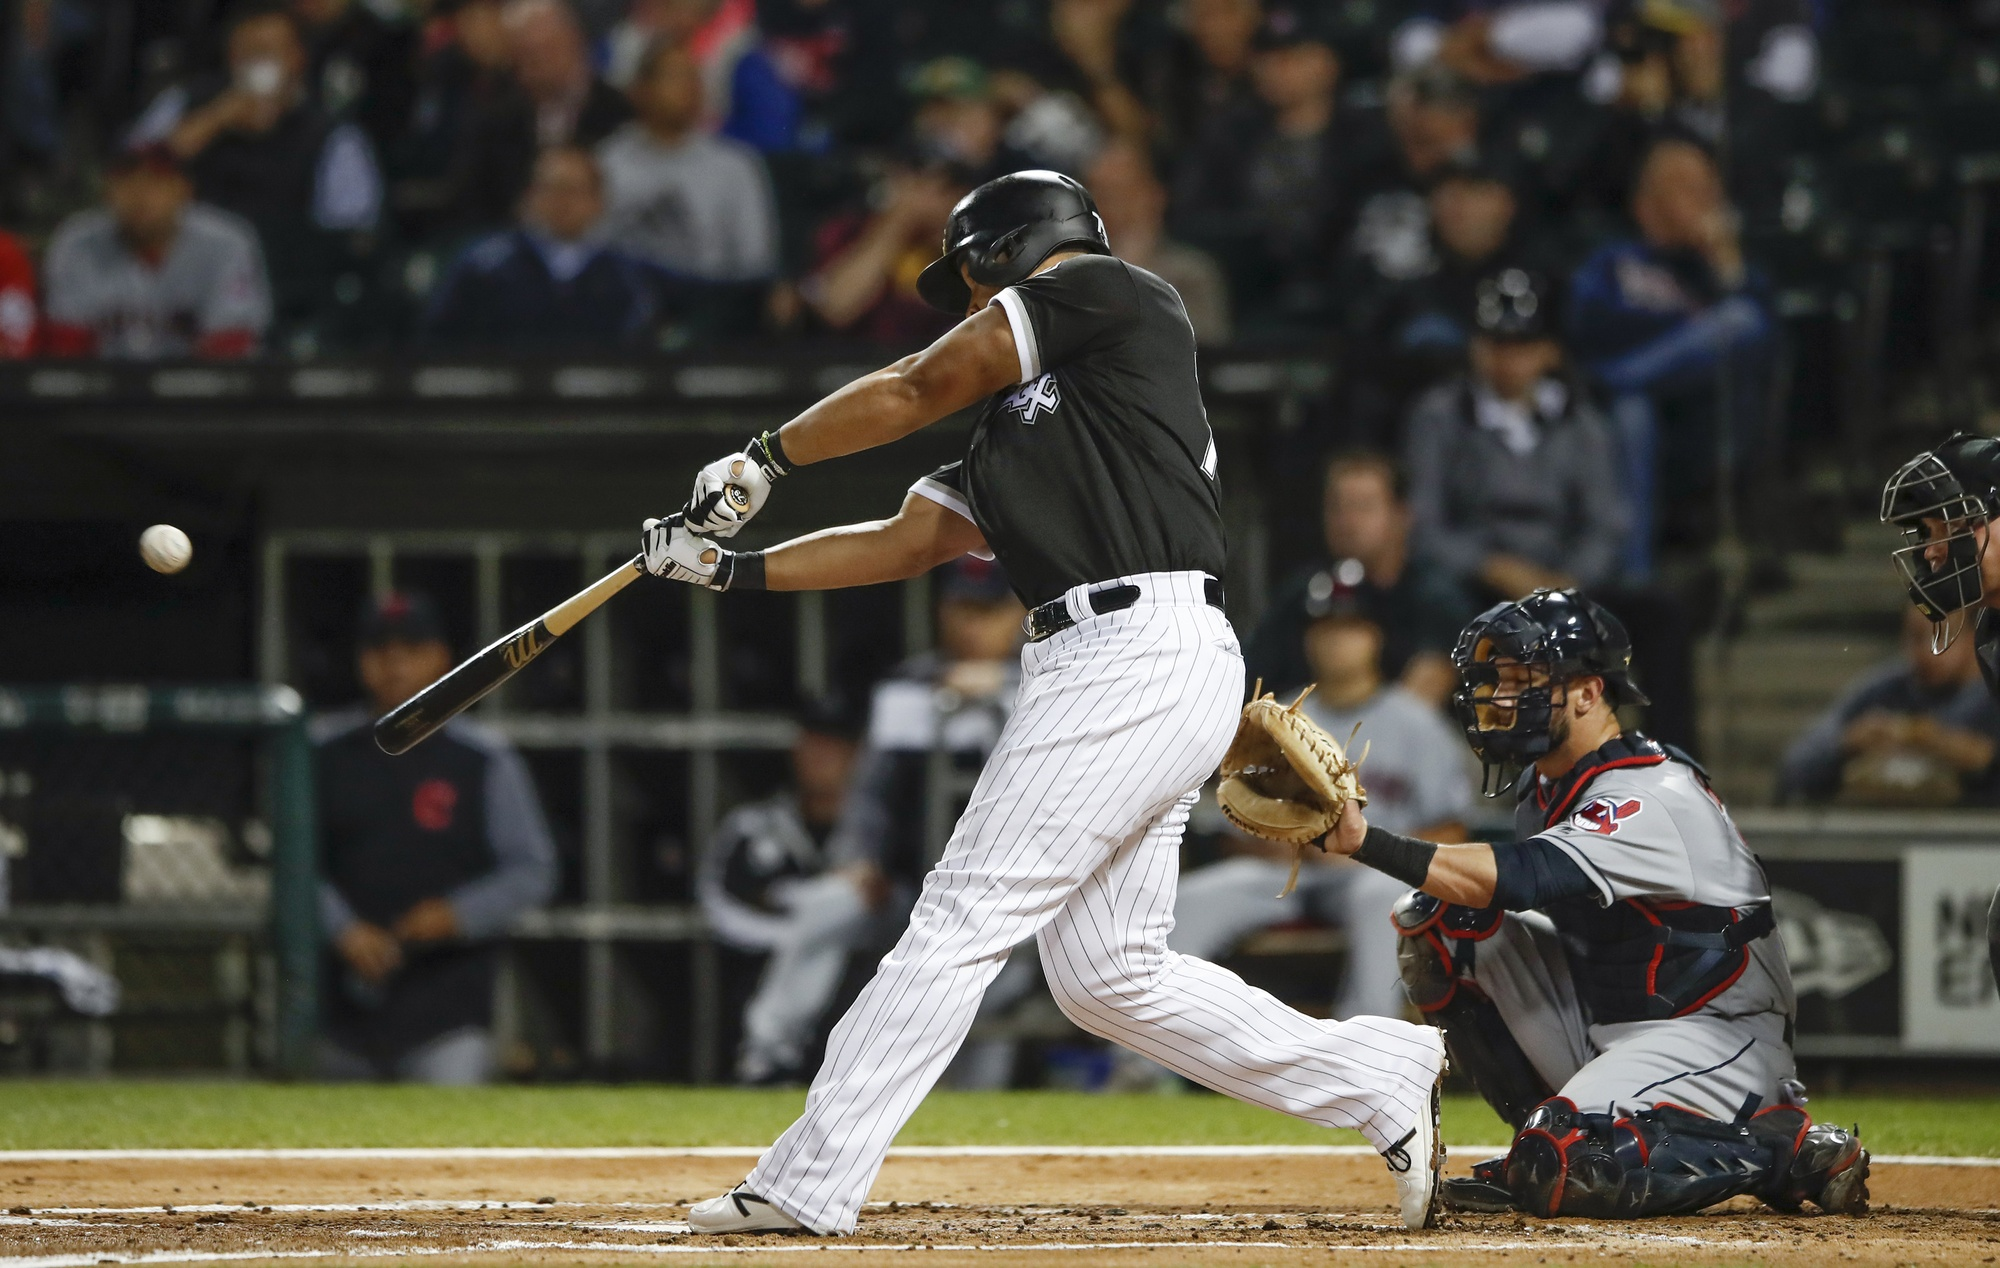 Sep 7, 2017; Chicago, IL, USA; Chicago White Sox first baseman Jose Abreu (79) hits a solo home run off Cleveland Indians starting pitcher Corey Kluber (not pictured) during the first inning at Guaranteed Rate Field. Mandatory Credit: Kamil Krzaczynski-USA TODAY Sports